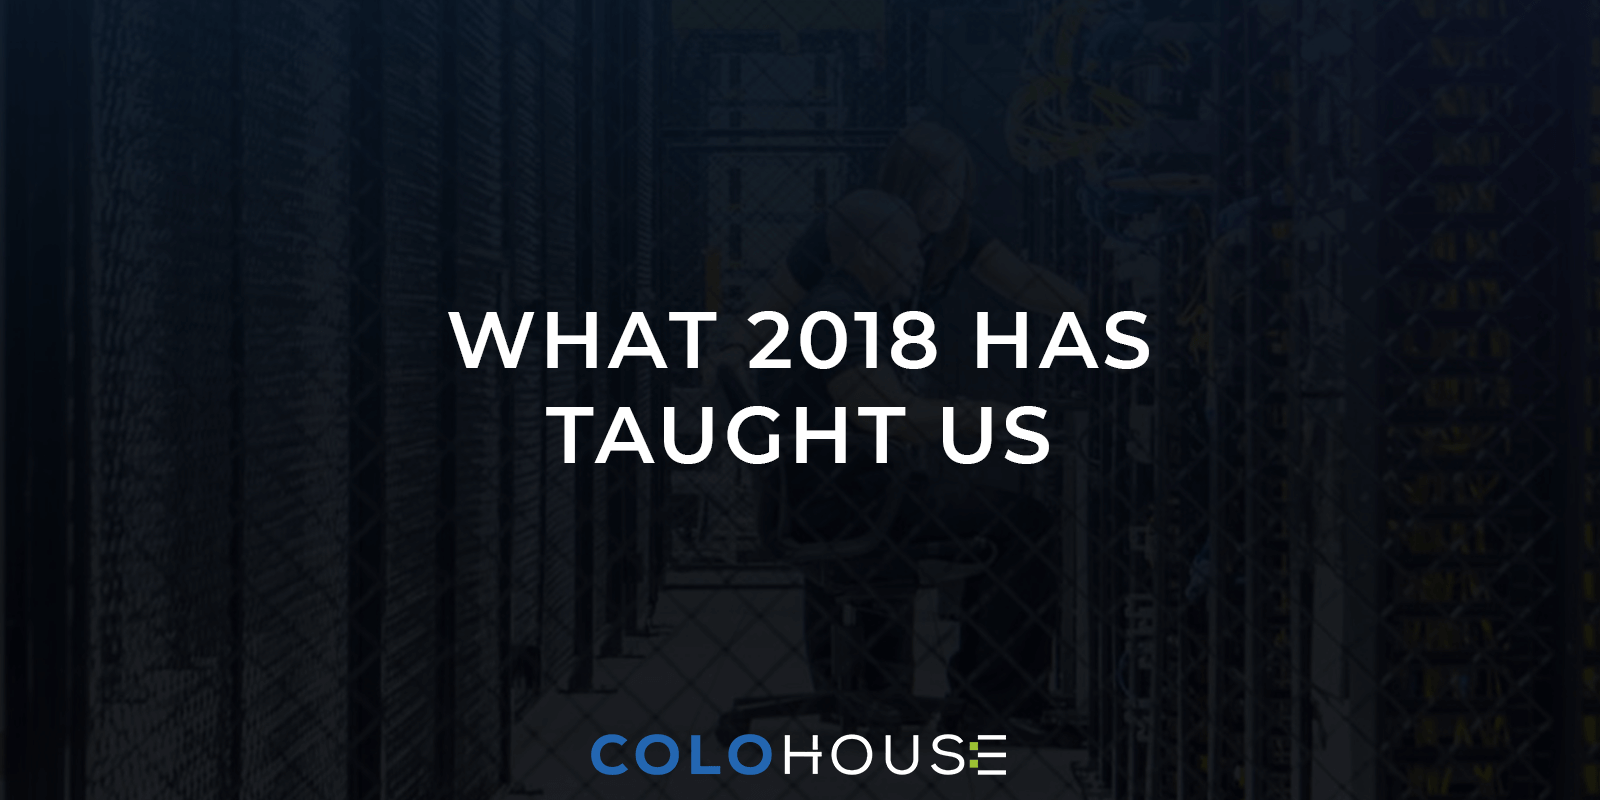 blog title: what 2018 has taught us